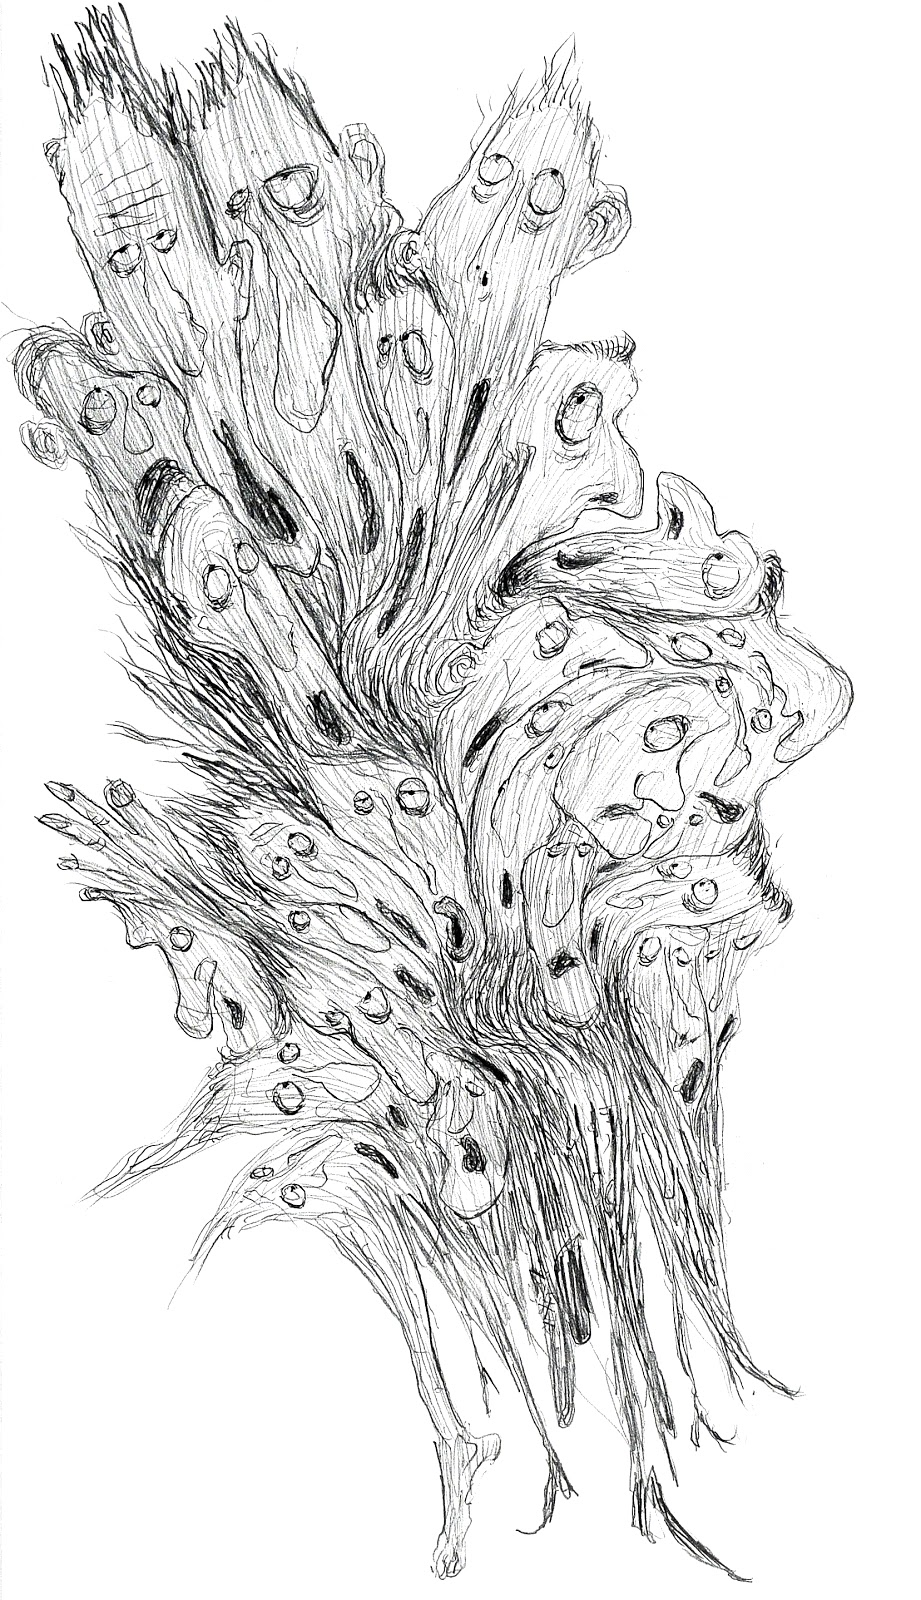 099e-paranorman-concept-art-character-design--Group_of_ghosts_3.jpg